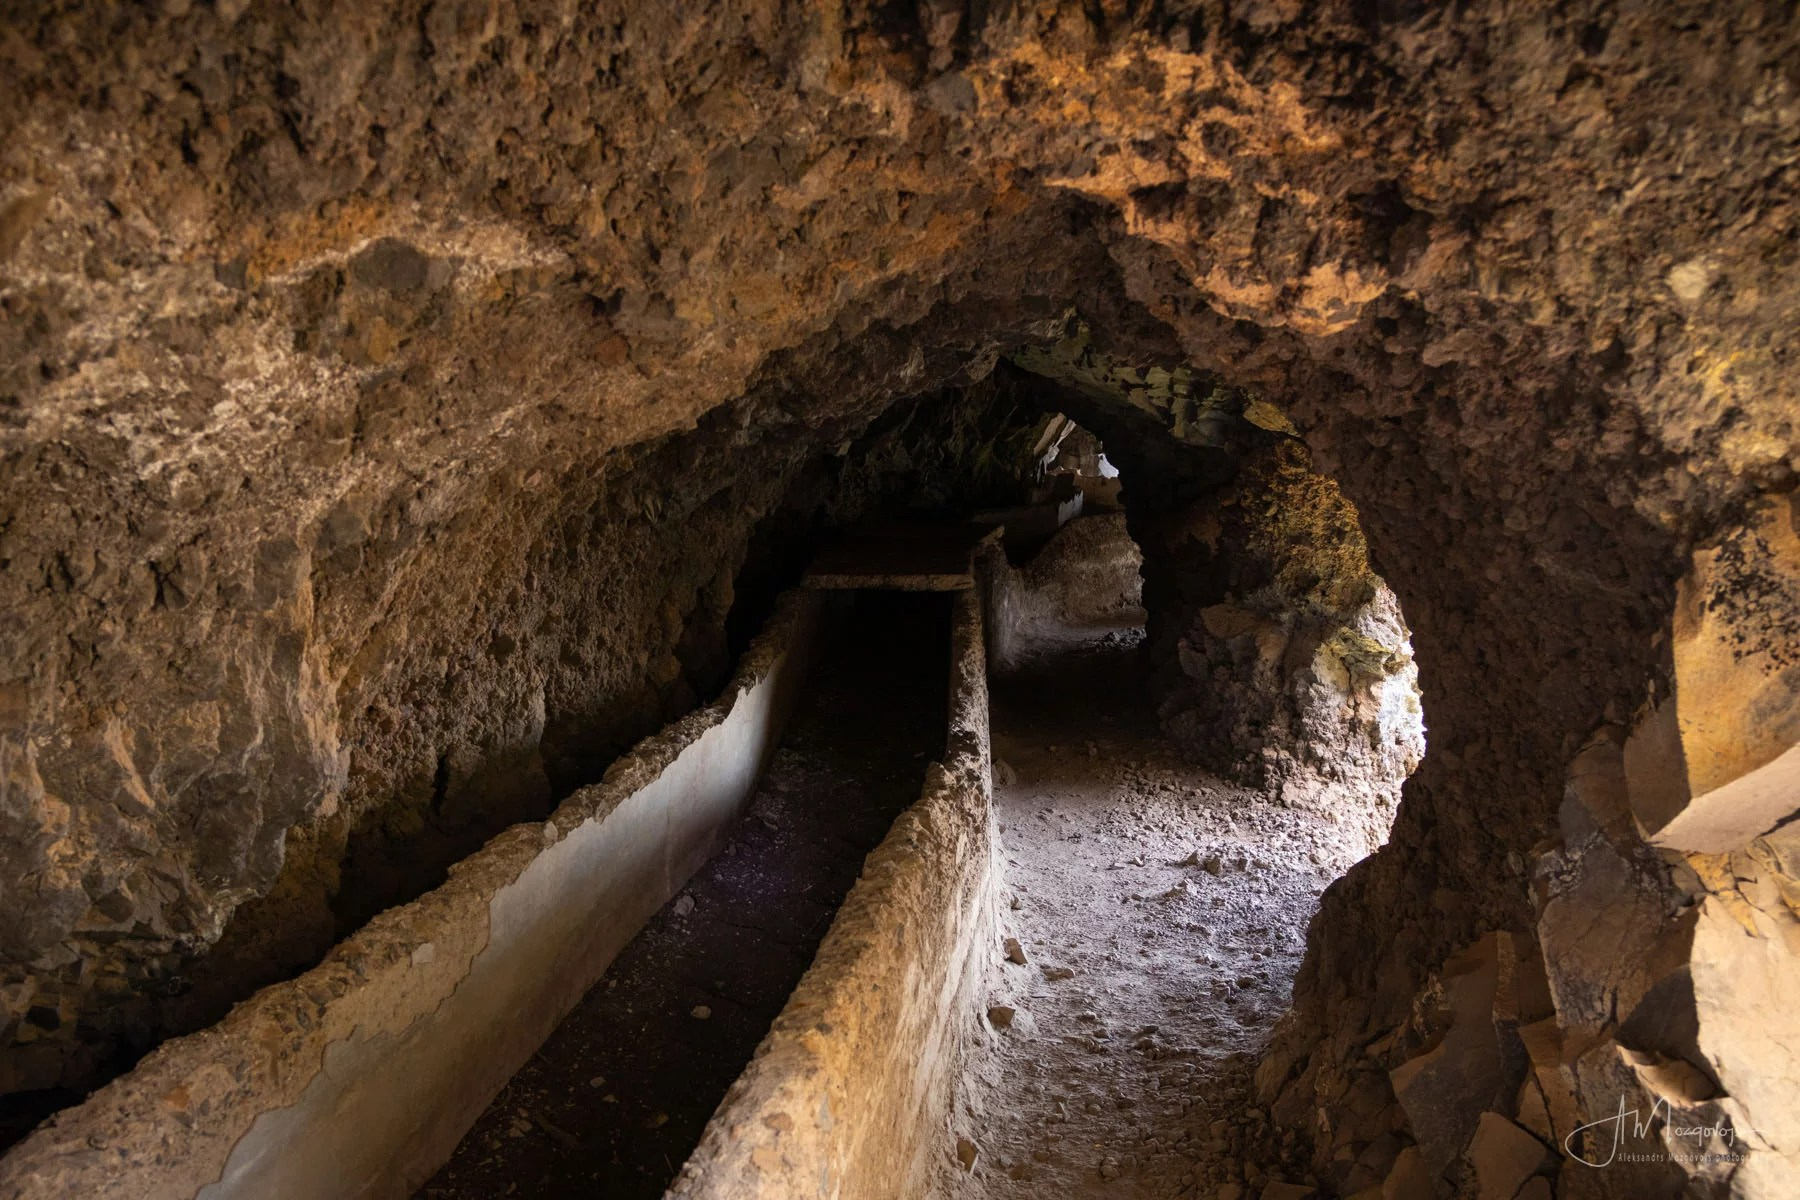 A tunnel at Ventanas de Güimar